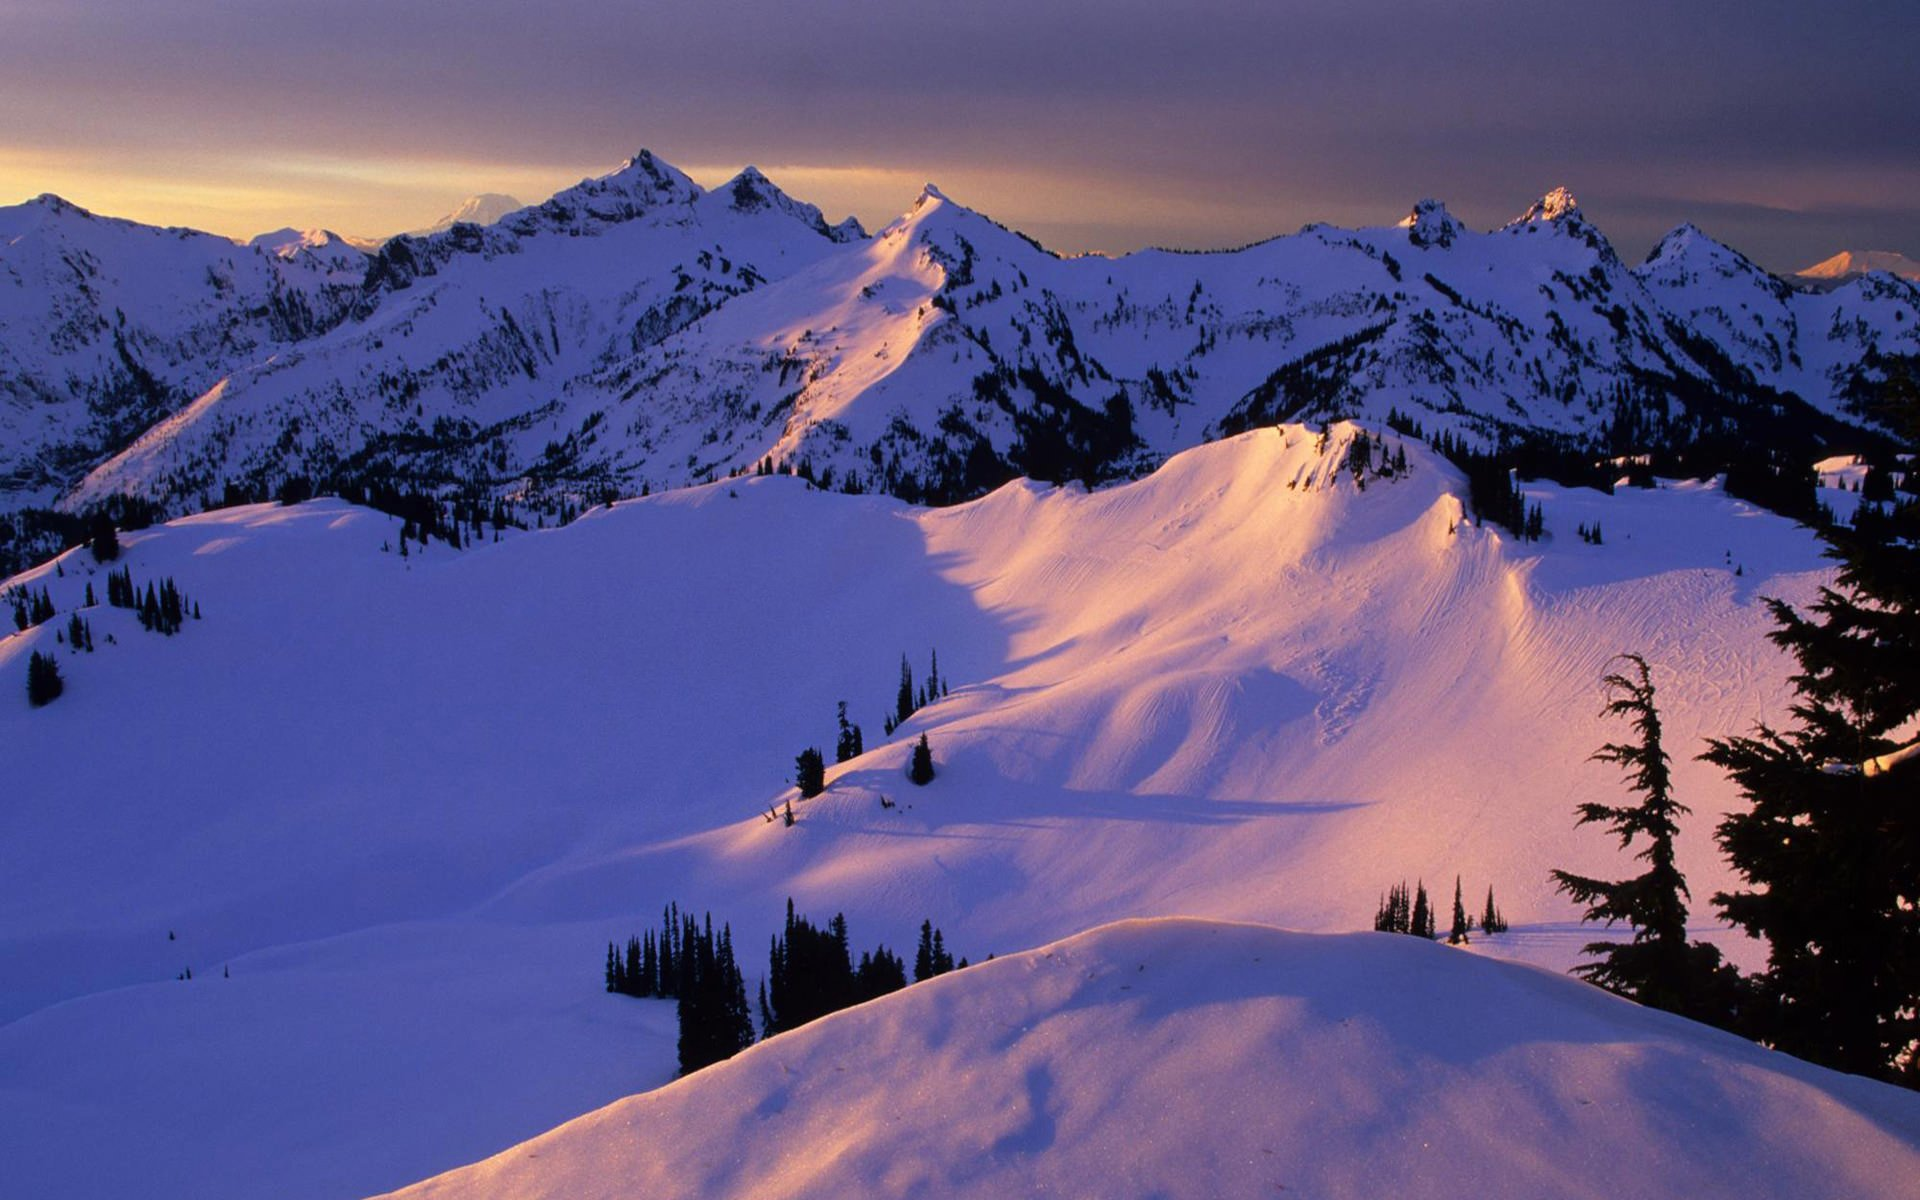 49 winter mountain screensavers and wallpaper on wallpapersafari - Mountain screensavers free ...